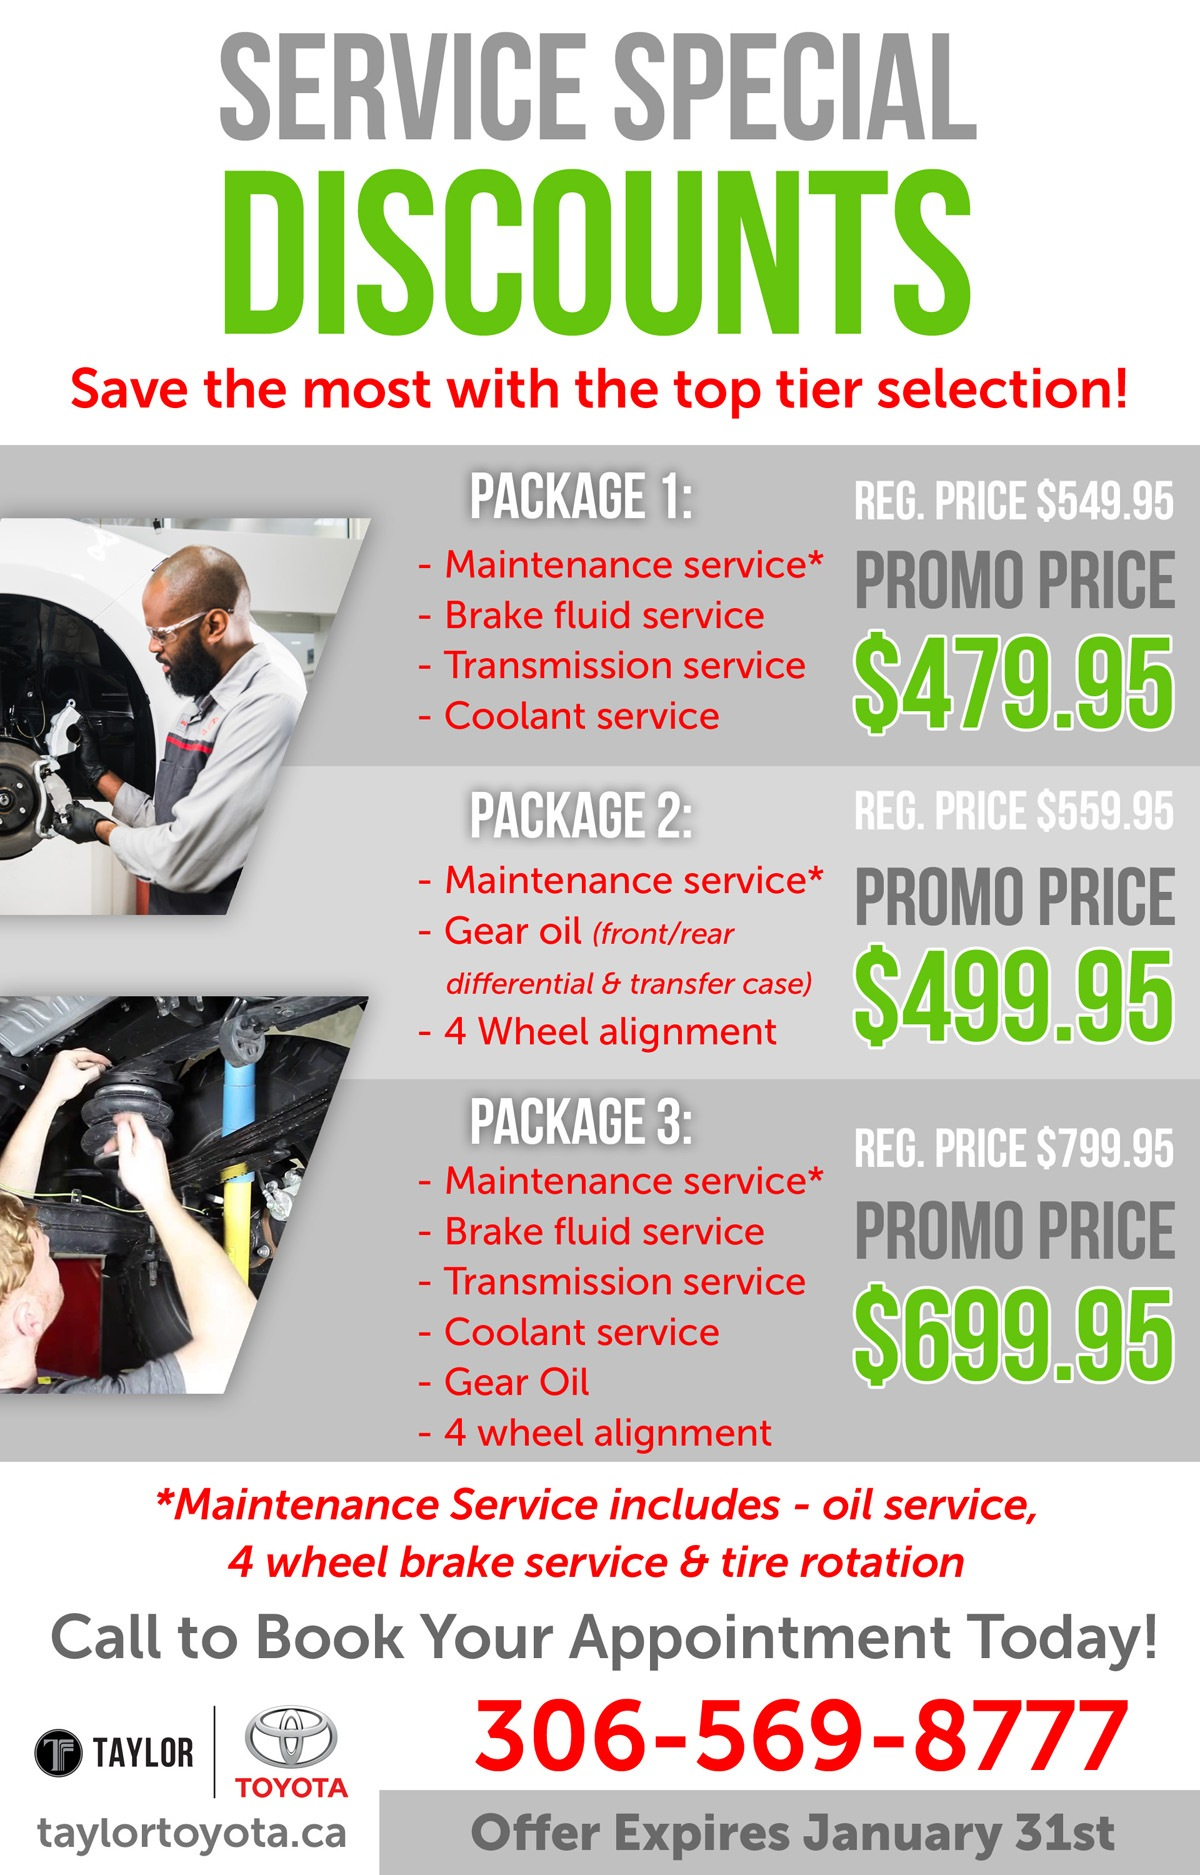 Save Now on a Variety of Servicing!